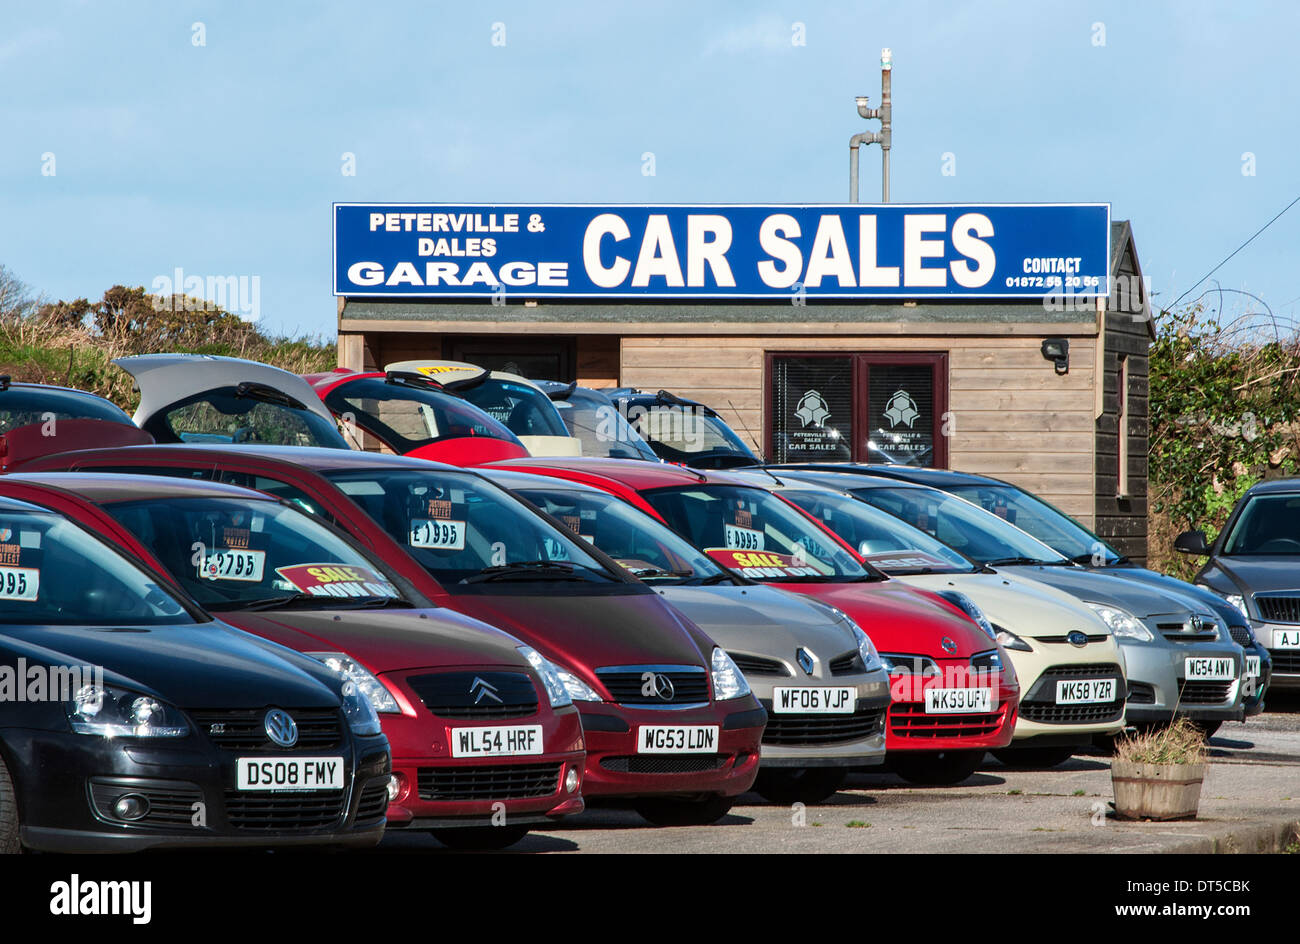 Second Hand Car Sales Lot Stock Photo Royalty Free Image